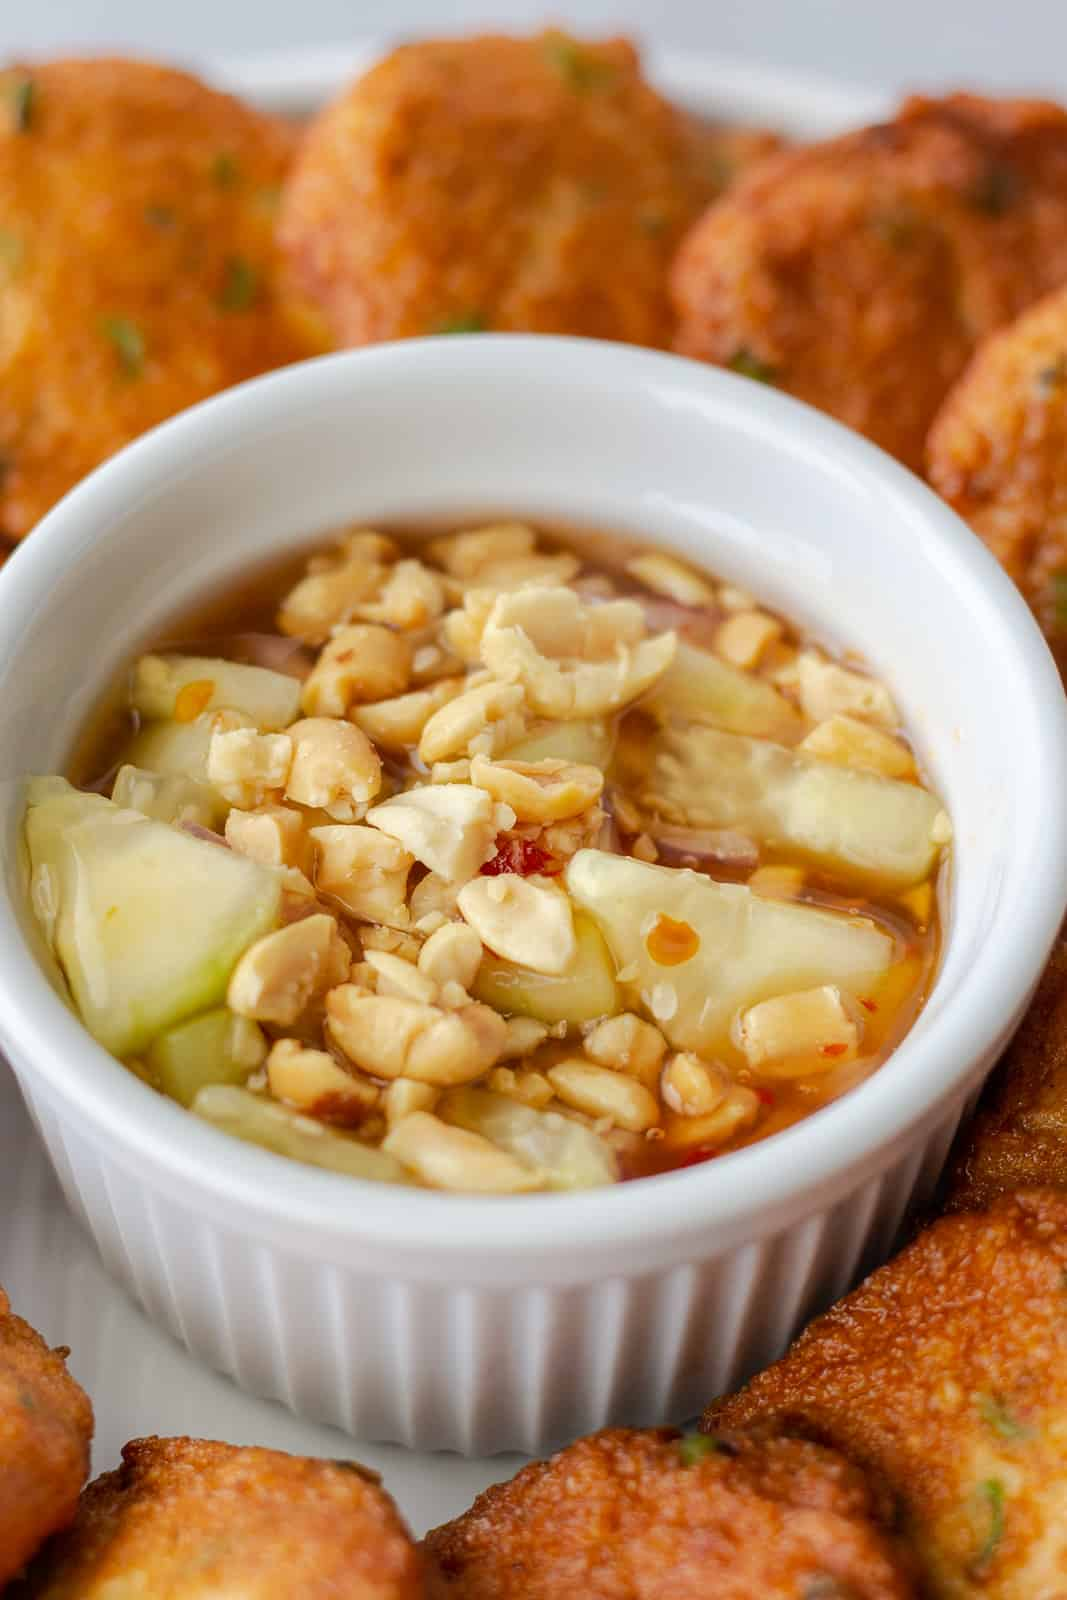 Up close view of sweet chili dipping sauce topped with peanuts.